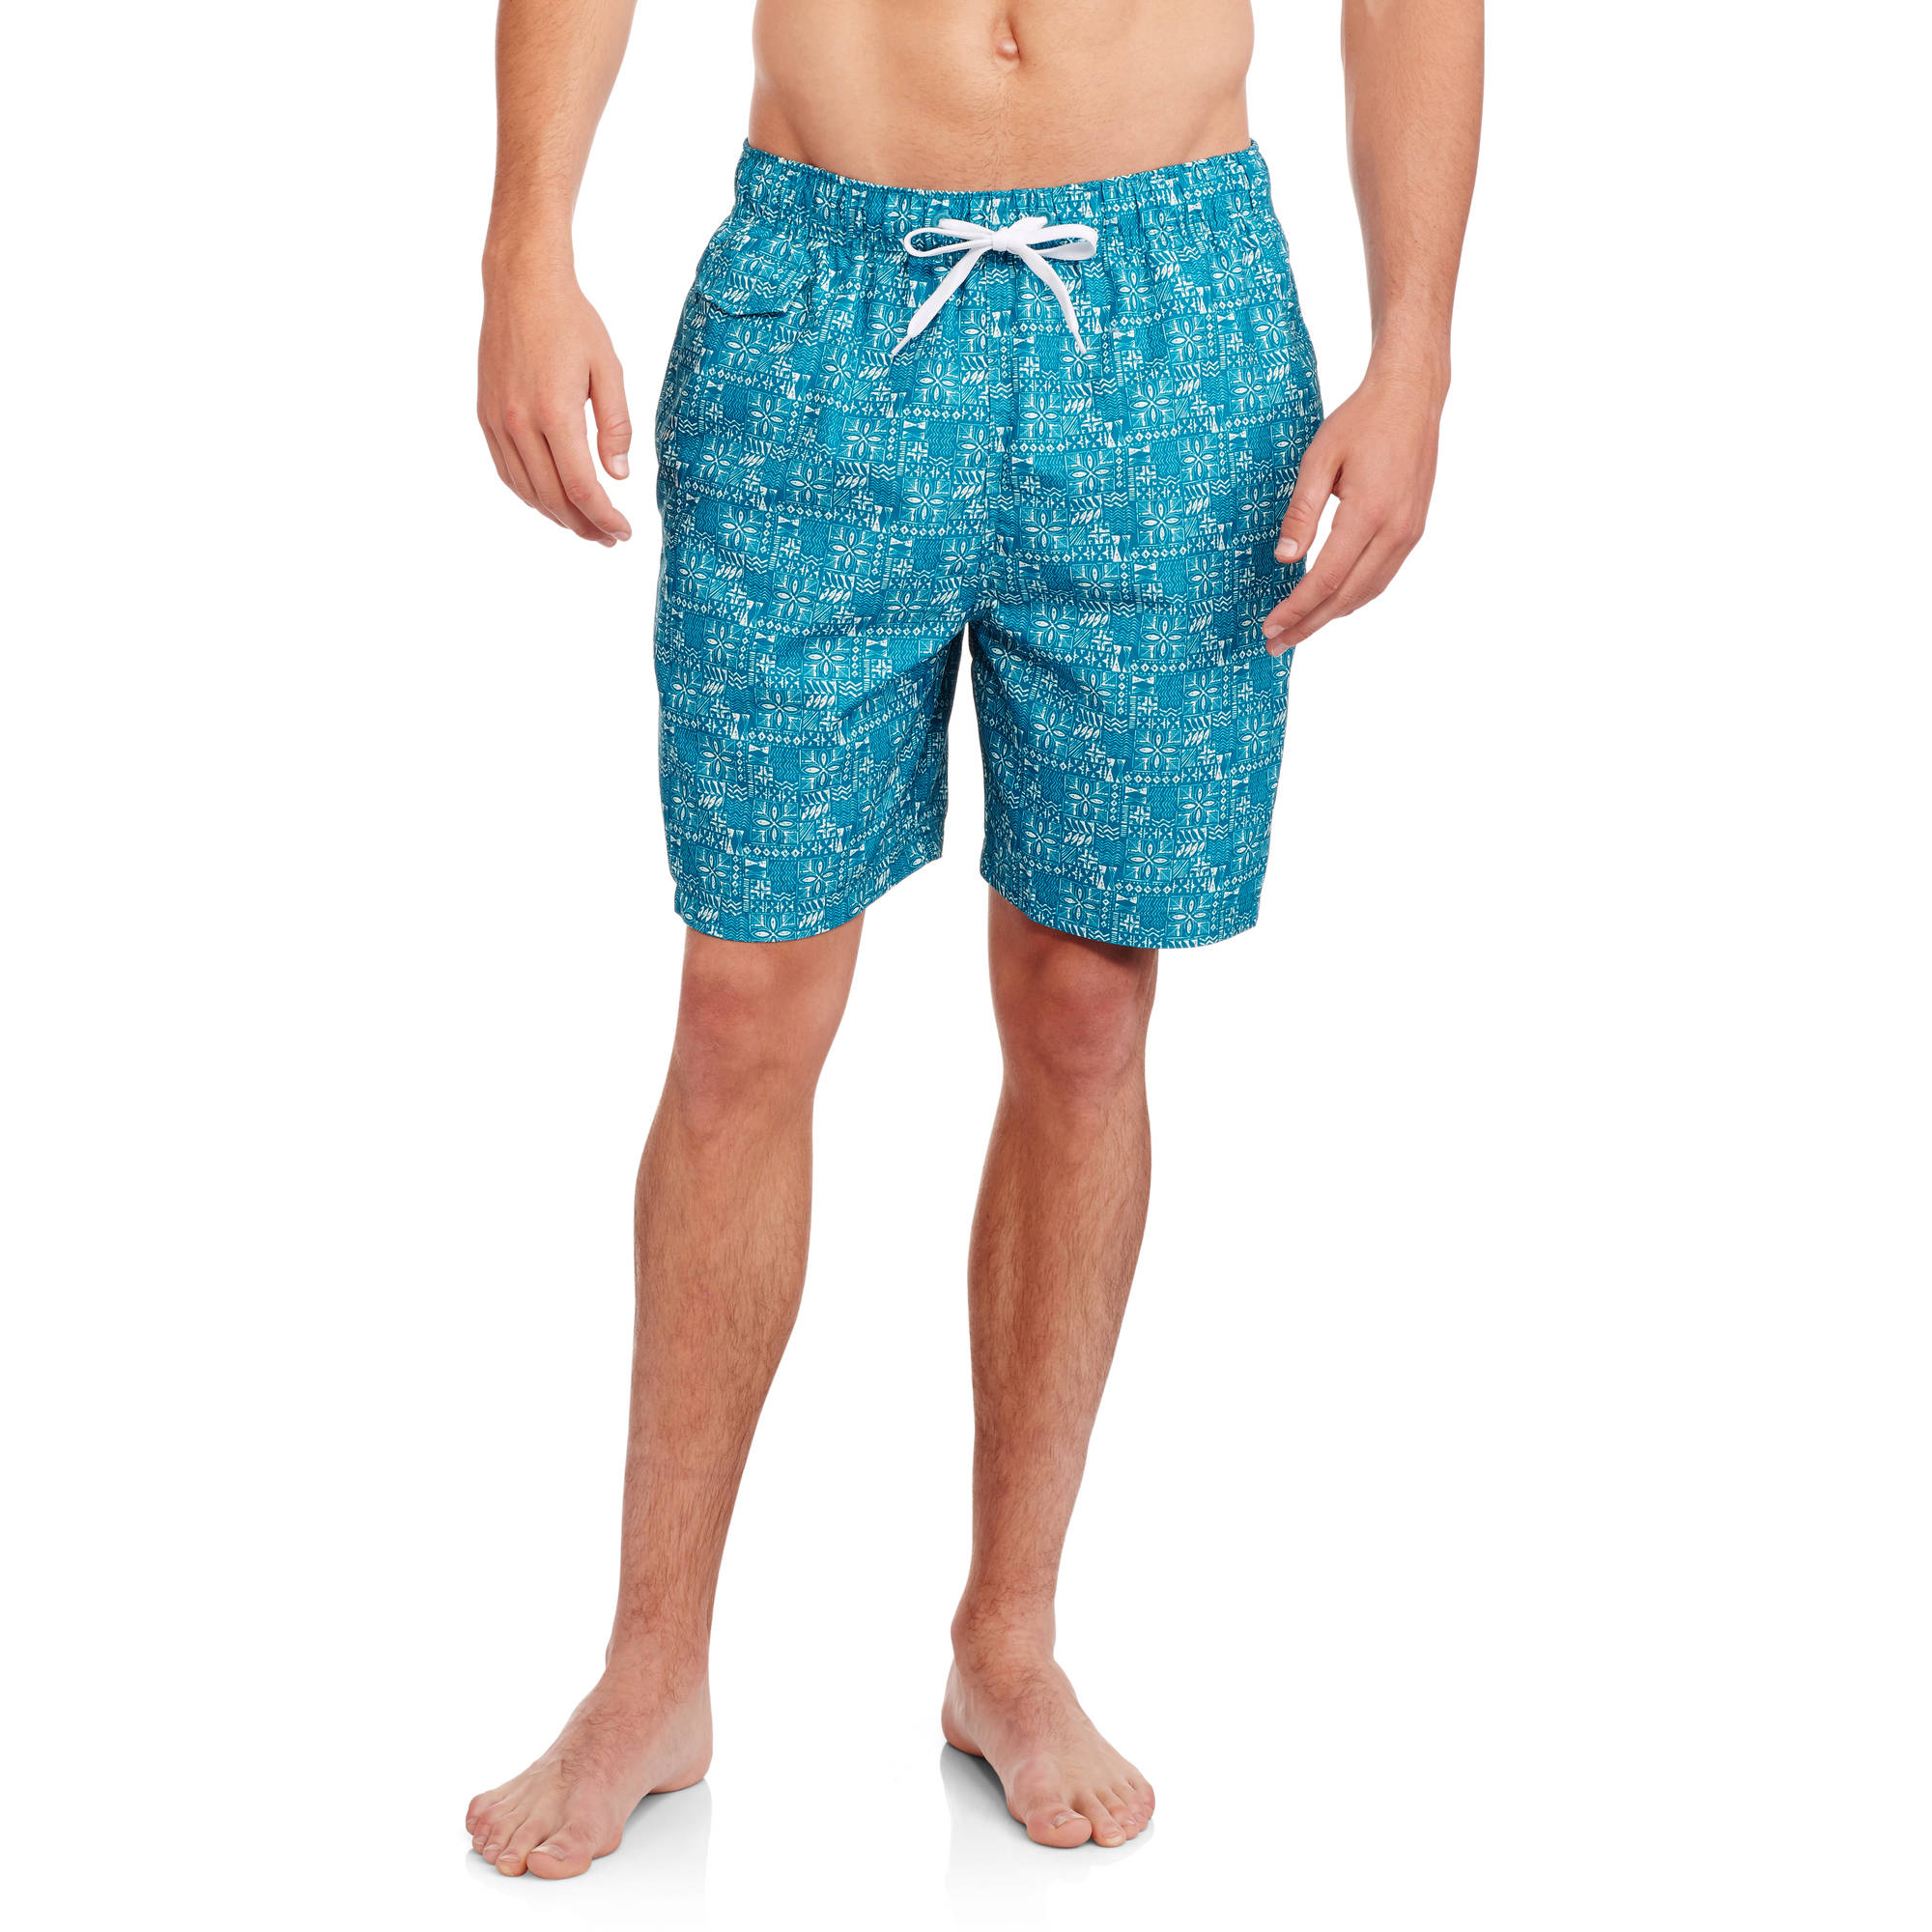 by Catalina Men's Printed Swim Trunks